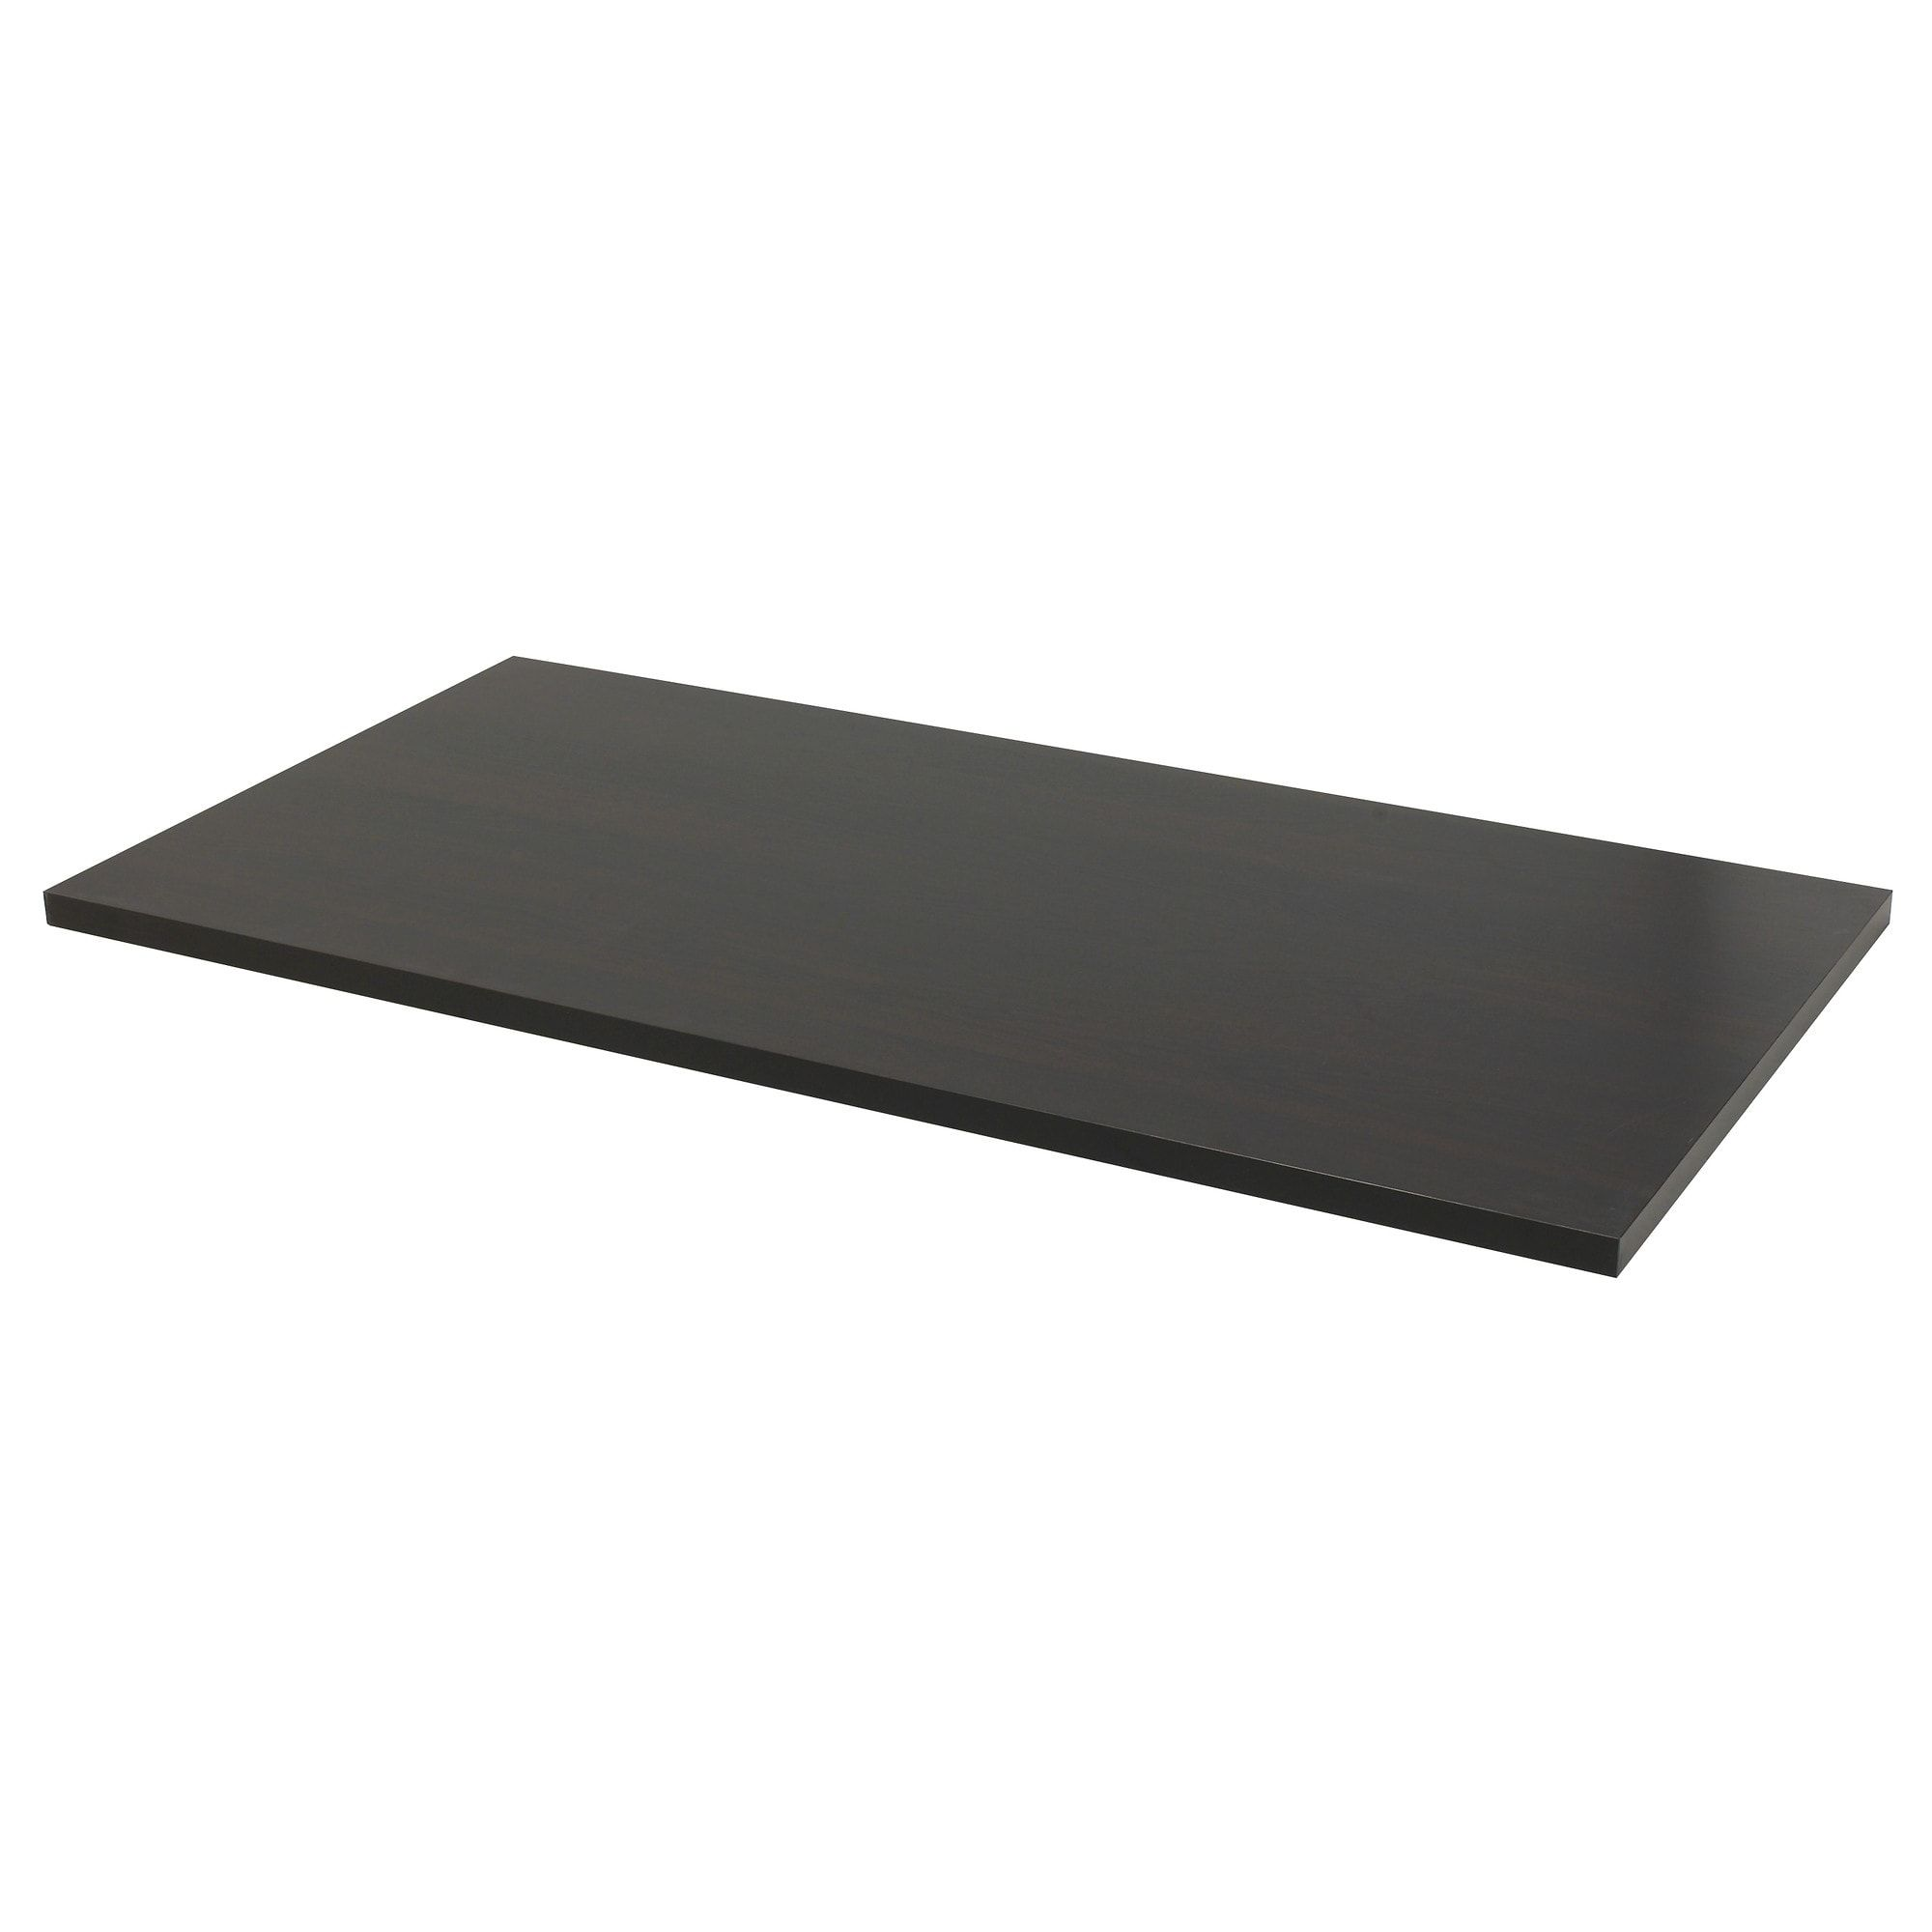 Tischplatten Von Ikea Ikea Linnmon Black Brown Tabletop In 2019 Smith Ikea